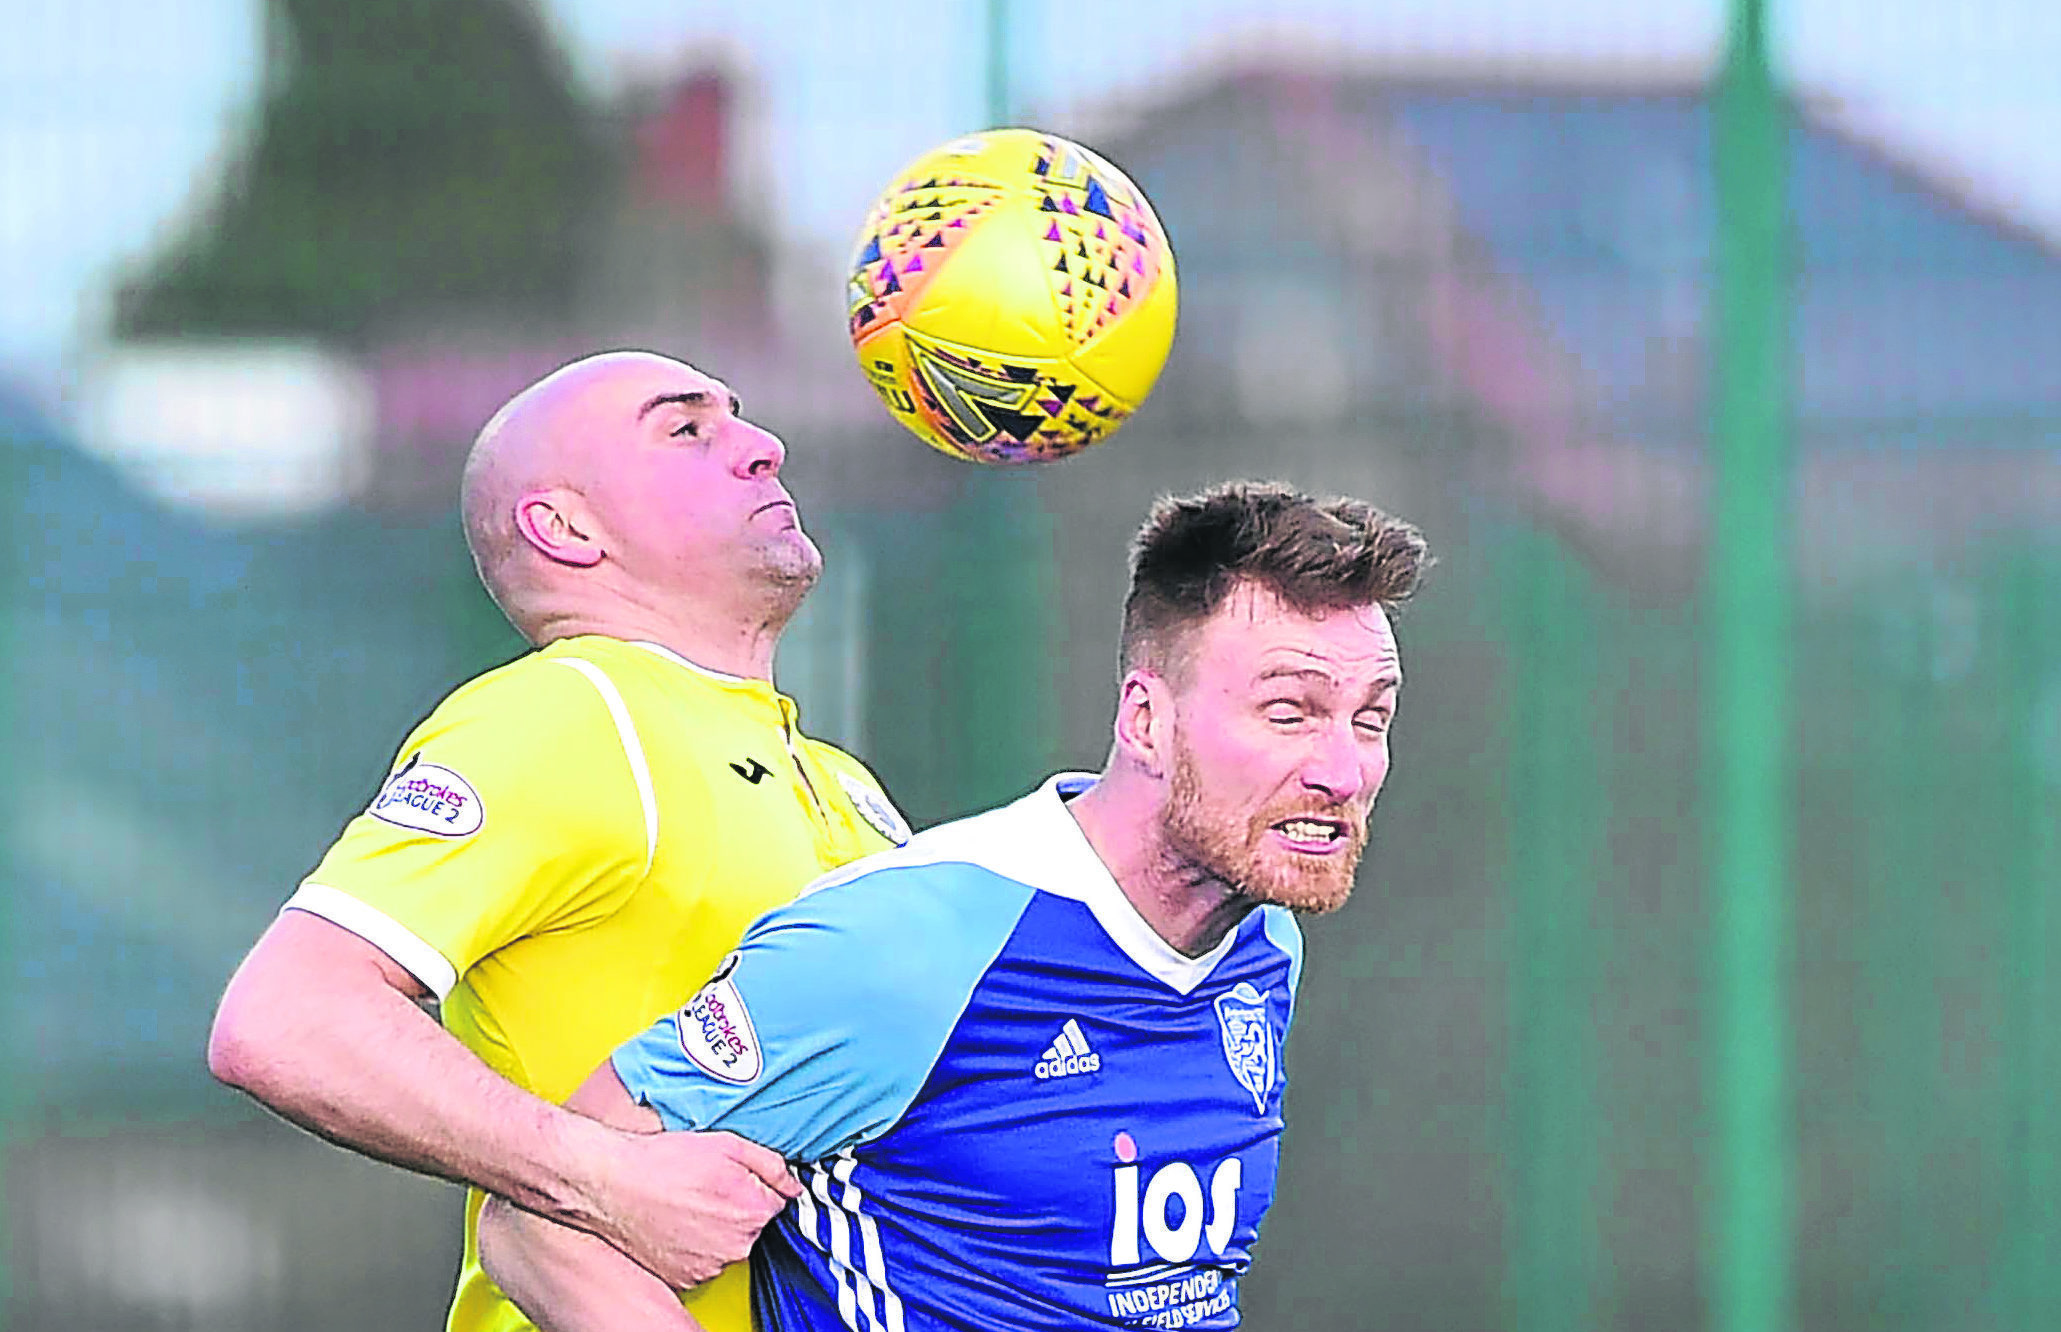 PETERHEAD'S RORY MCALLISTER IS HELD BY PAT SCULLION